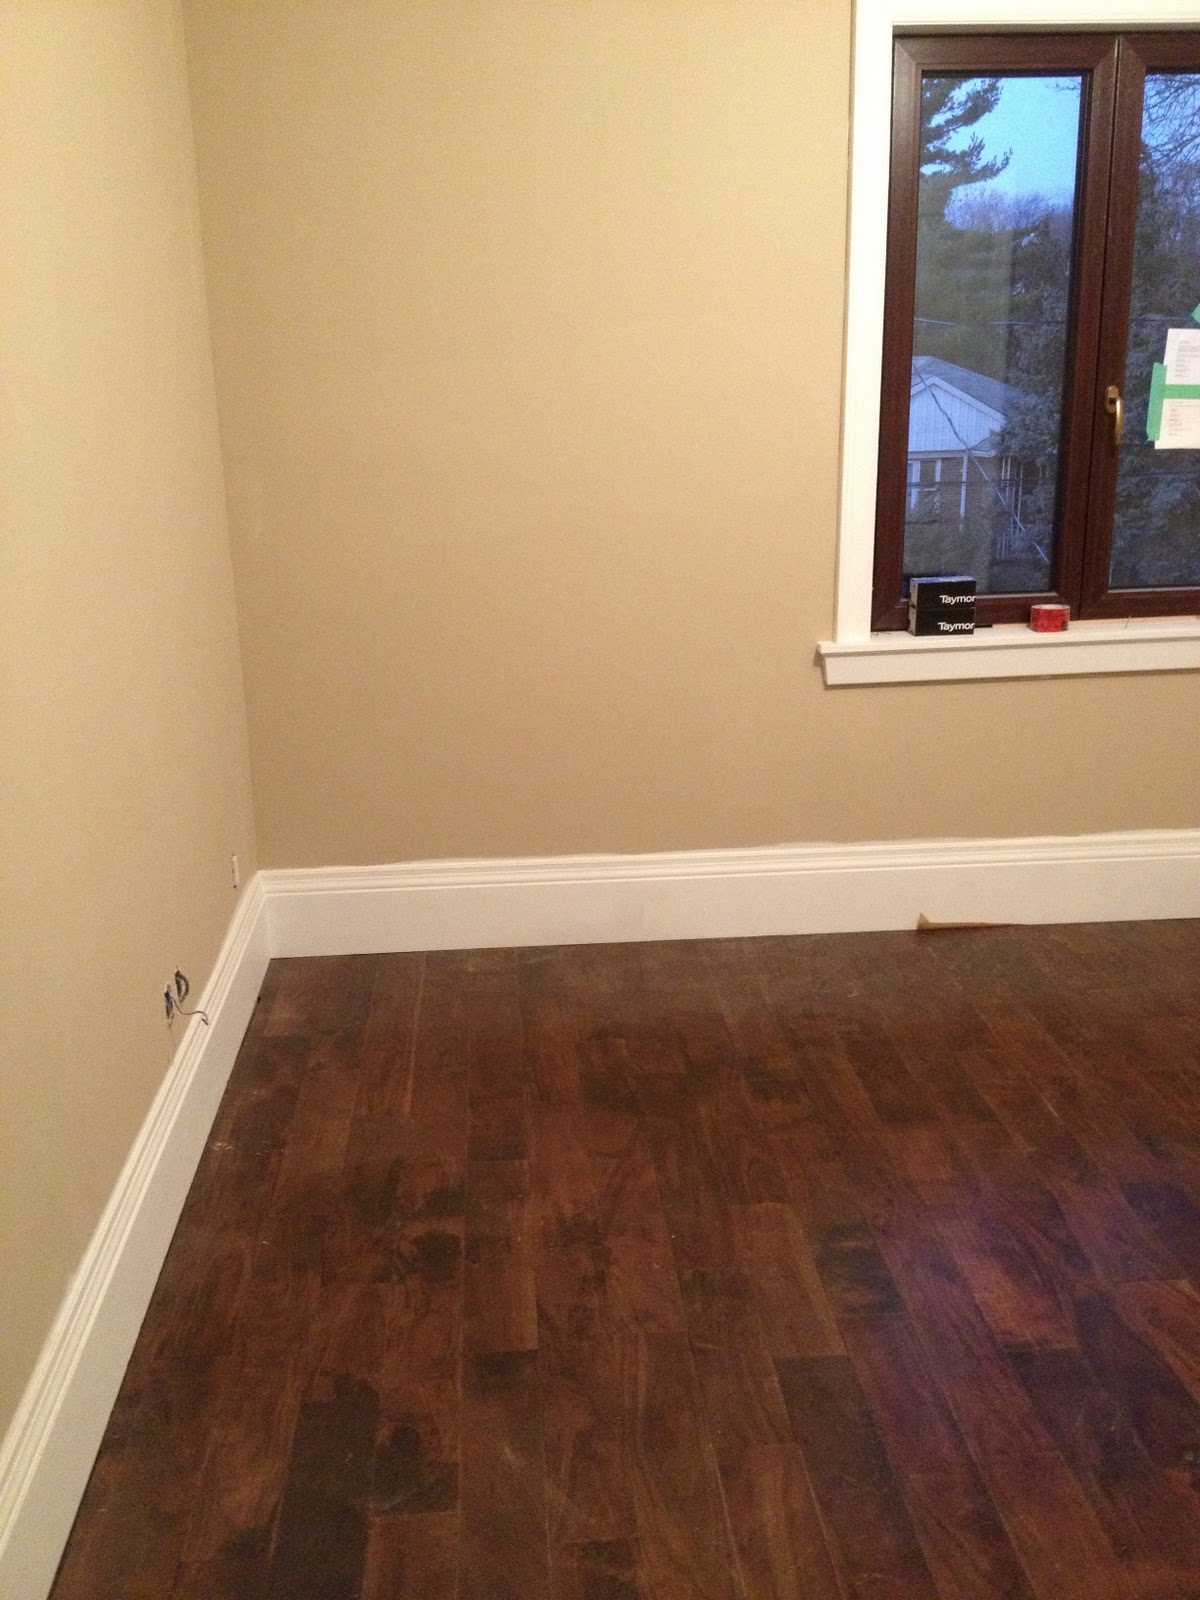 The reno coach passive house project in toronto our new for Hardwood floors toronto